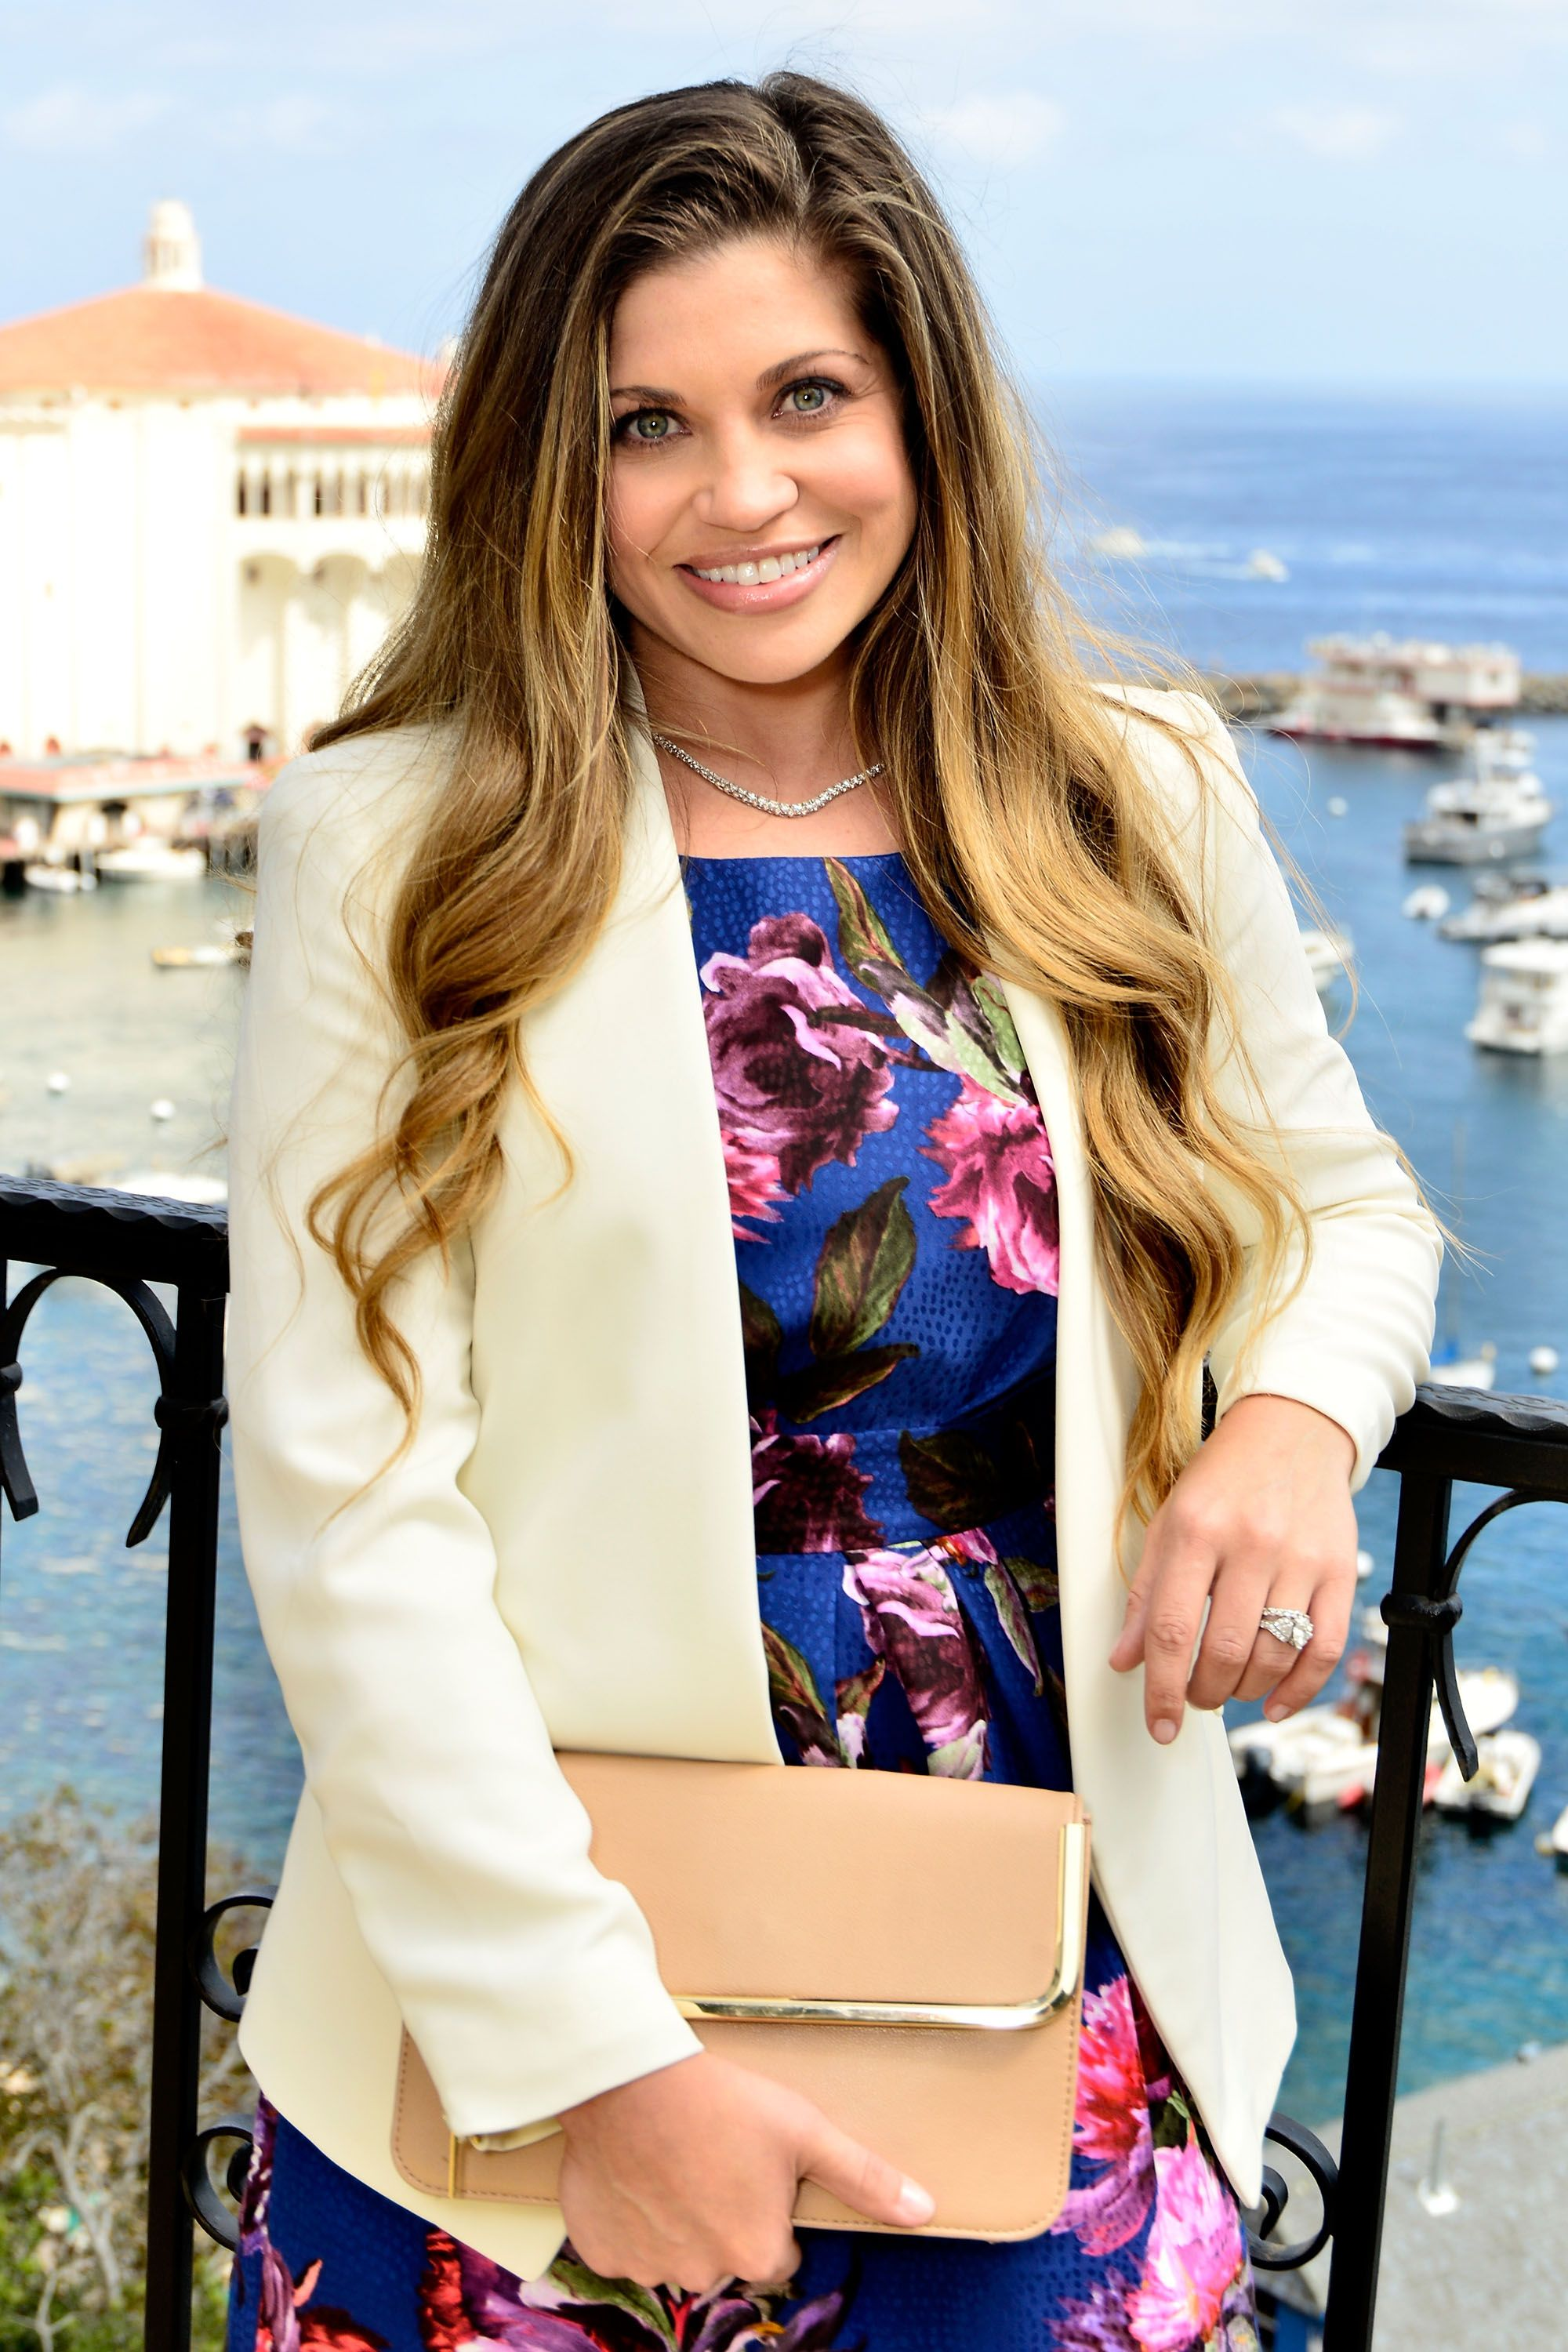 Danielle Fishel at the Catalina Film Festival's Annual Brunch in 2014 in Catalina Island | Source: Getty Images